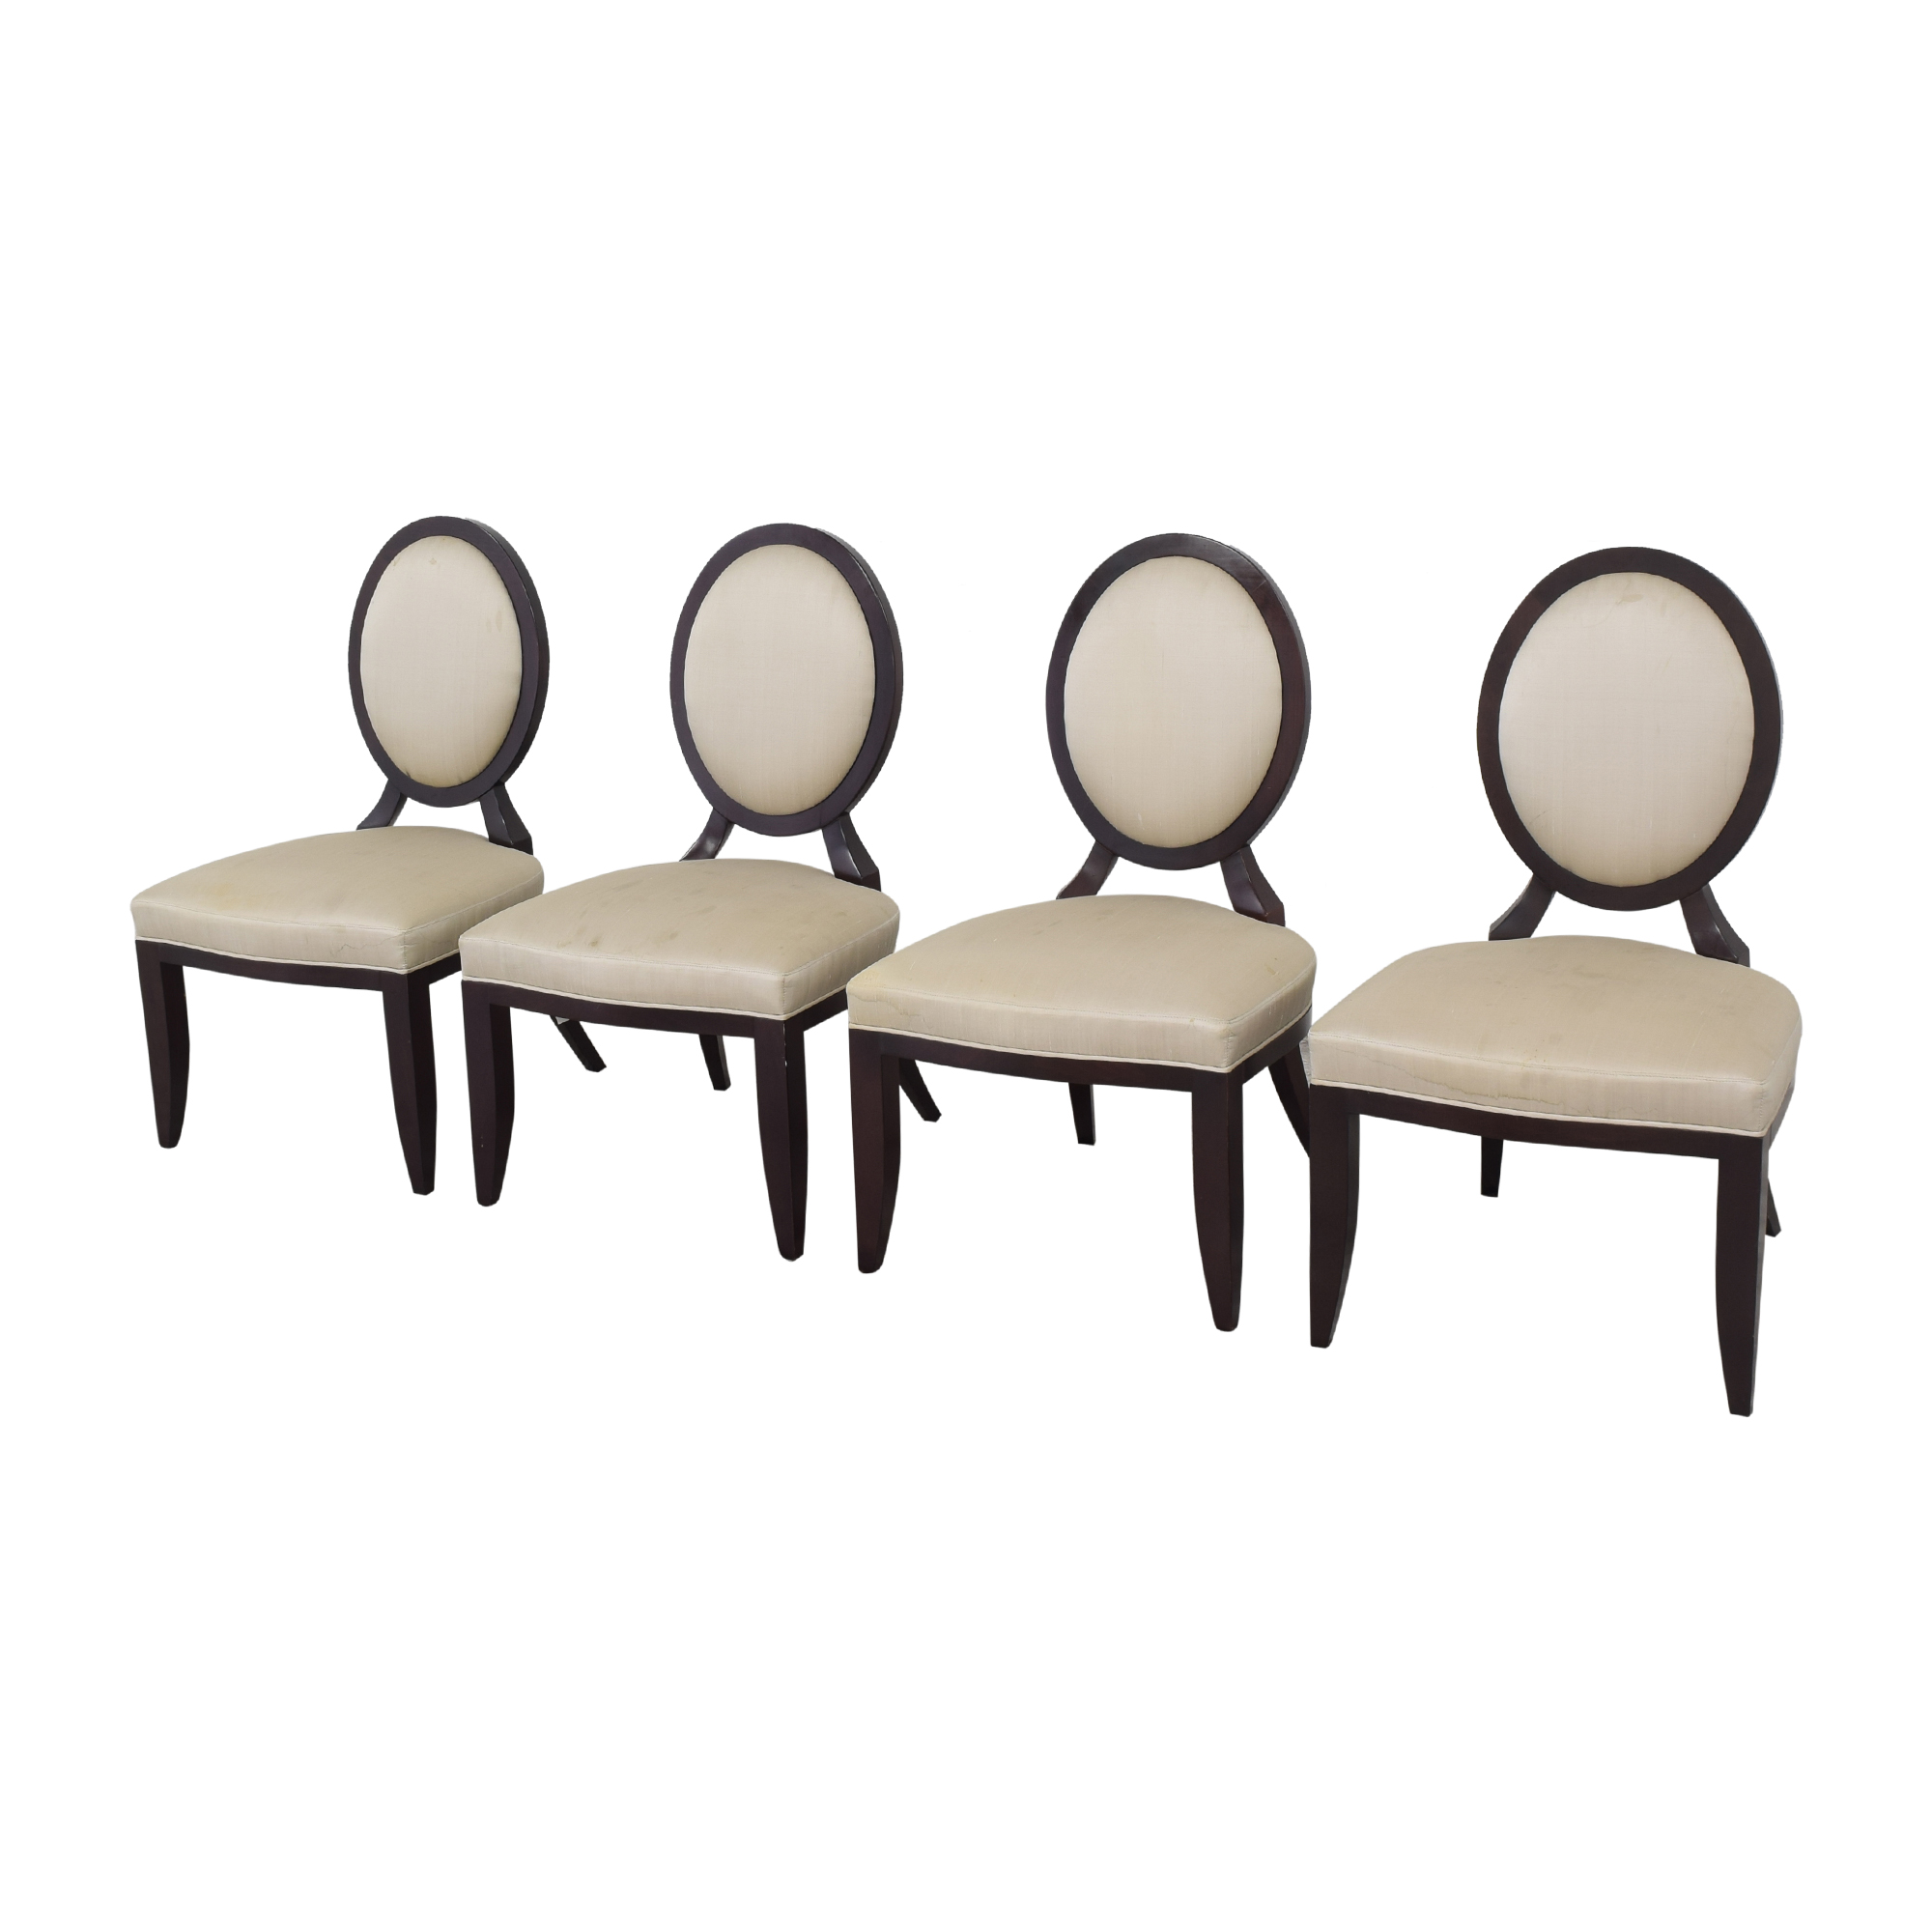 Baker Furniture Oval X Back Dining Chairs / Chairs